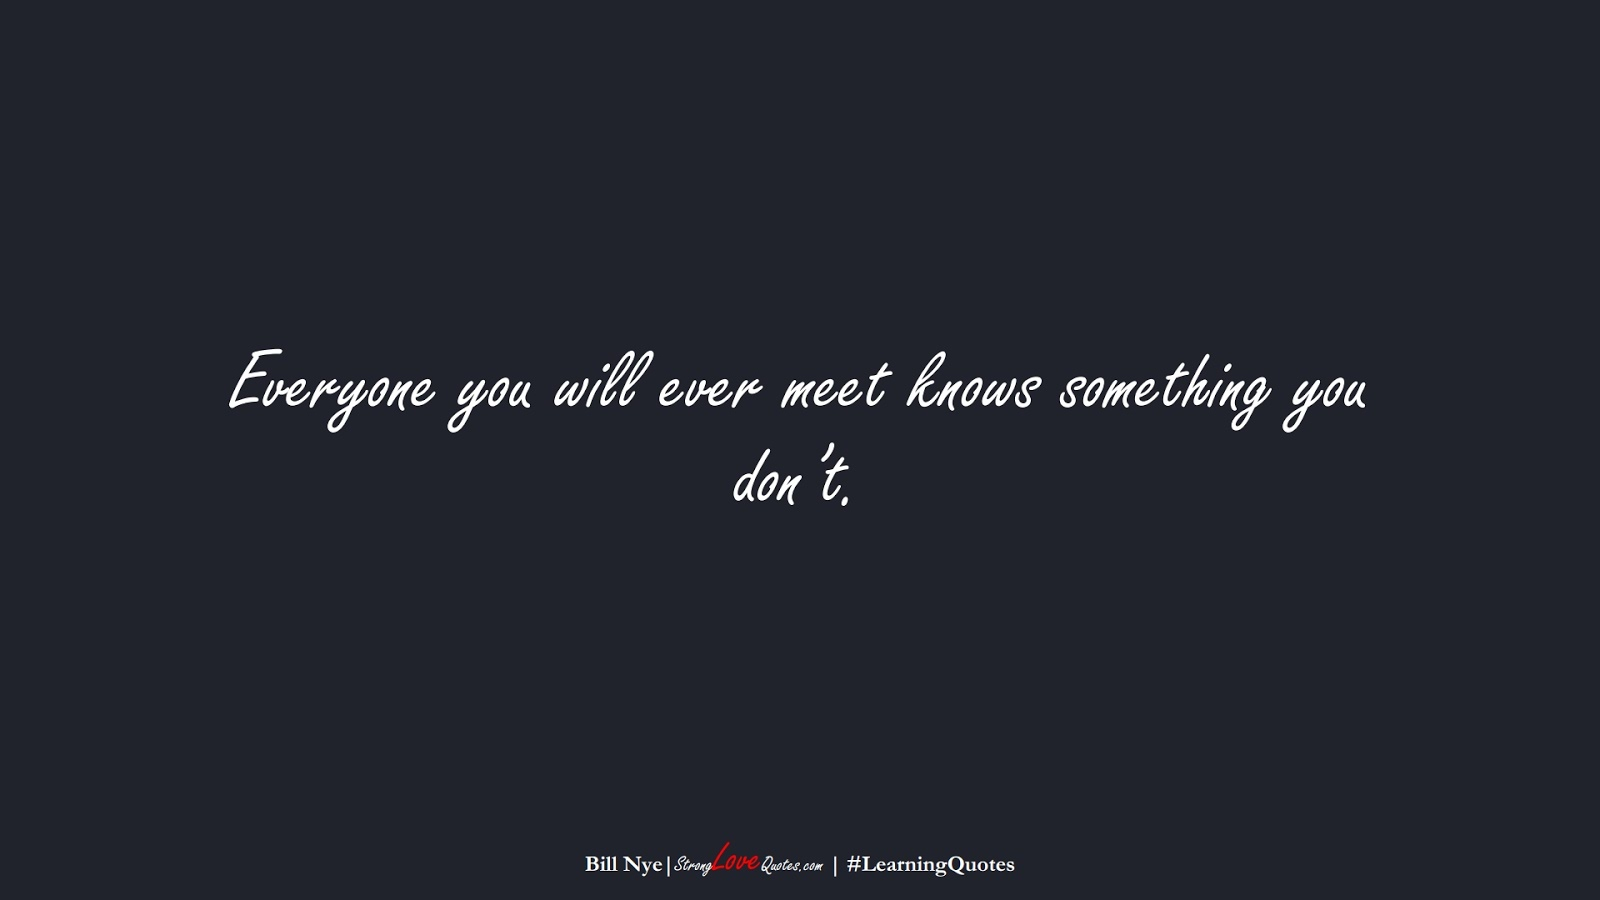 Everyone you will ever meet knows something you don't. (Bill Nye);  #LearningQuotes